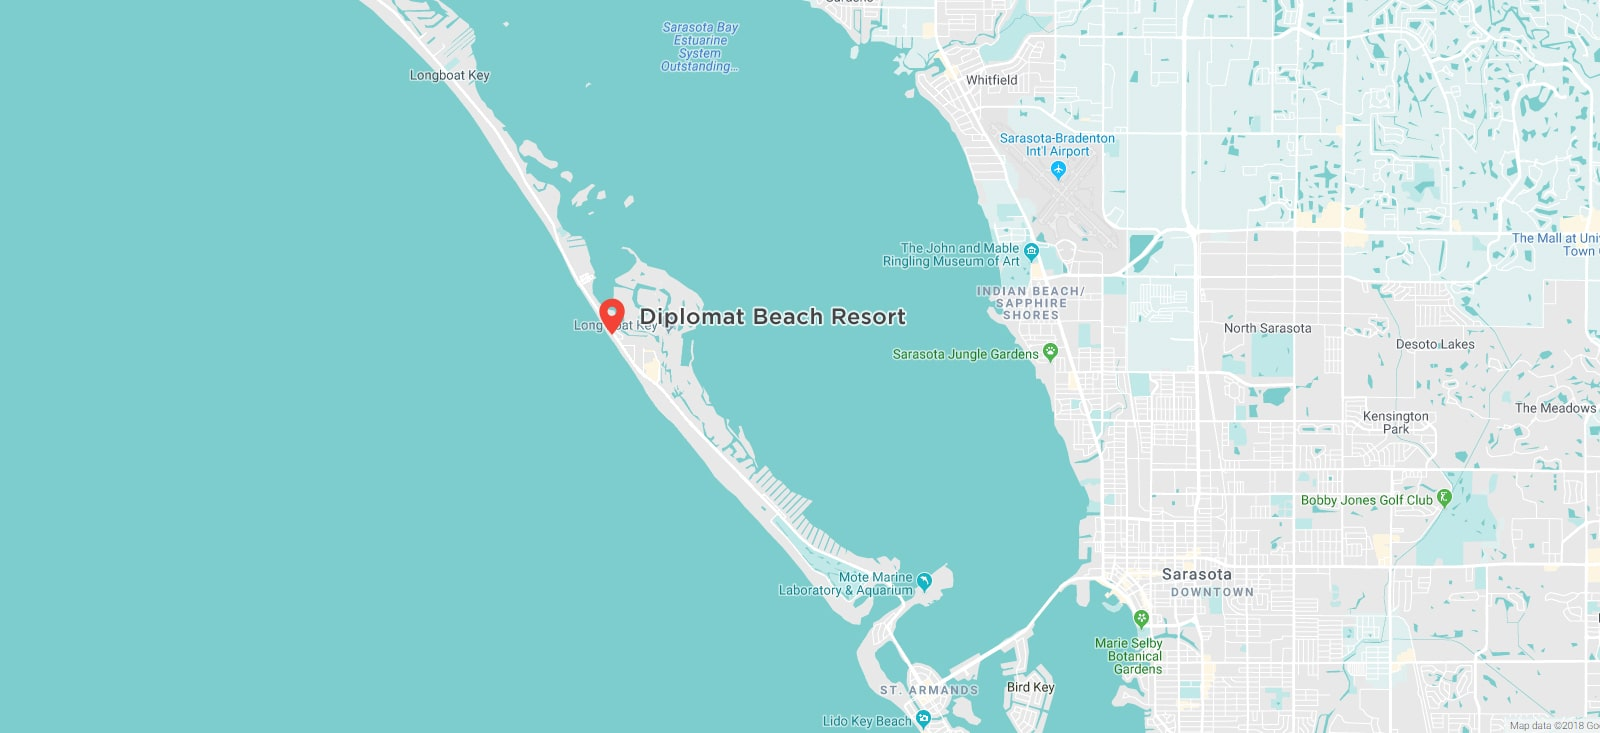 Diplomat Beach Resort map